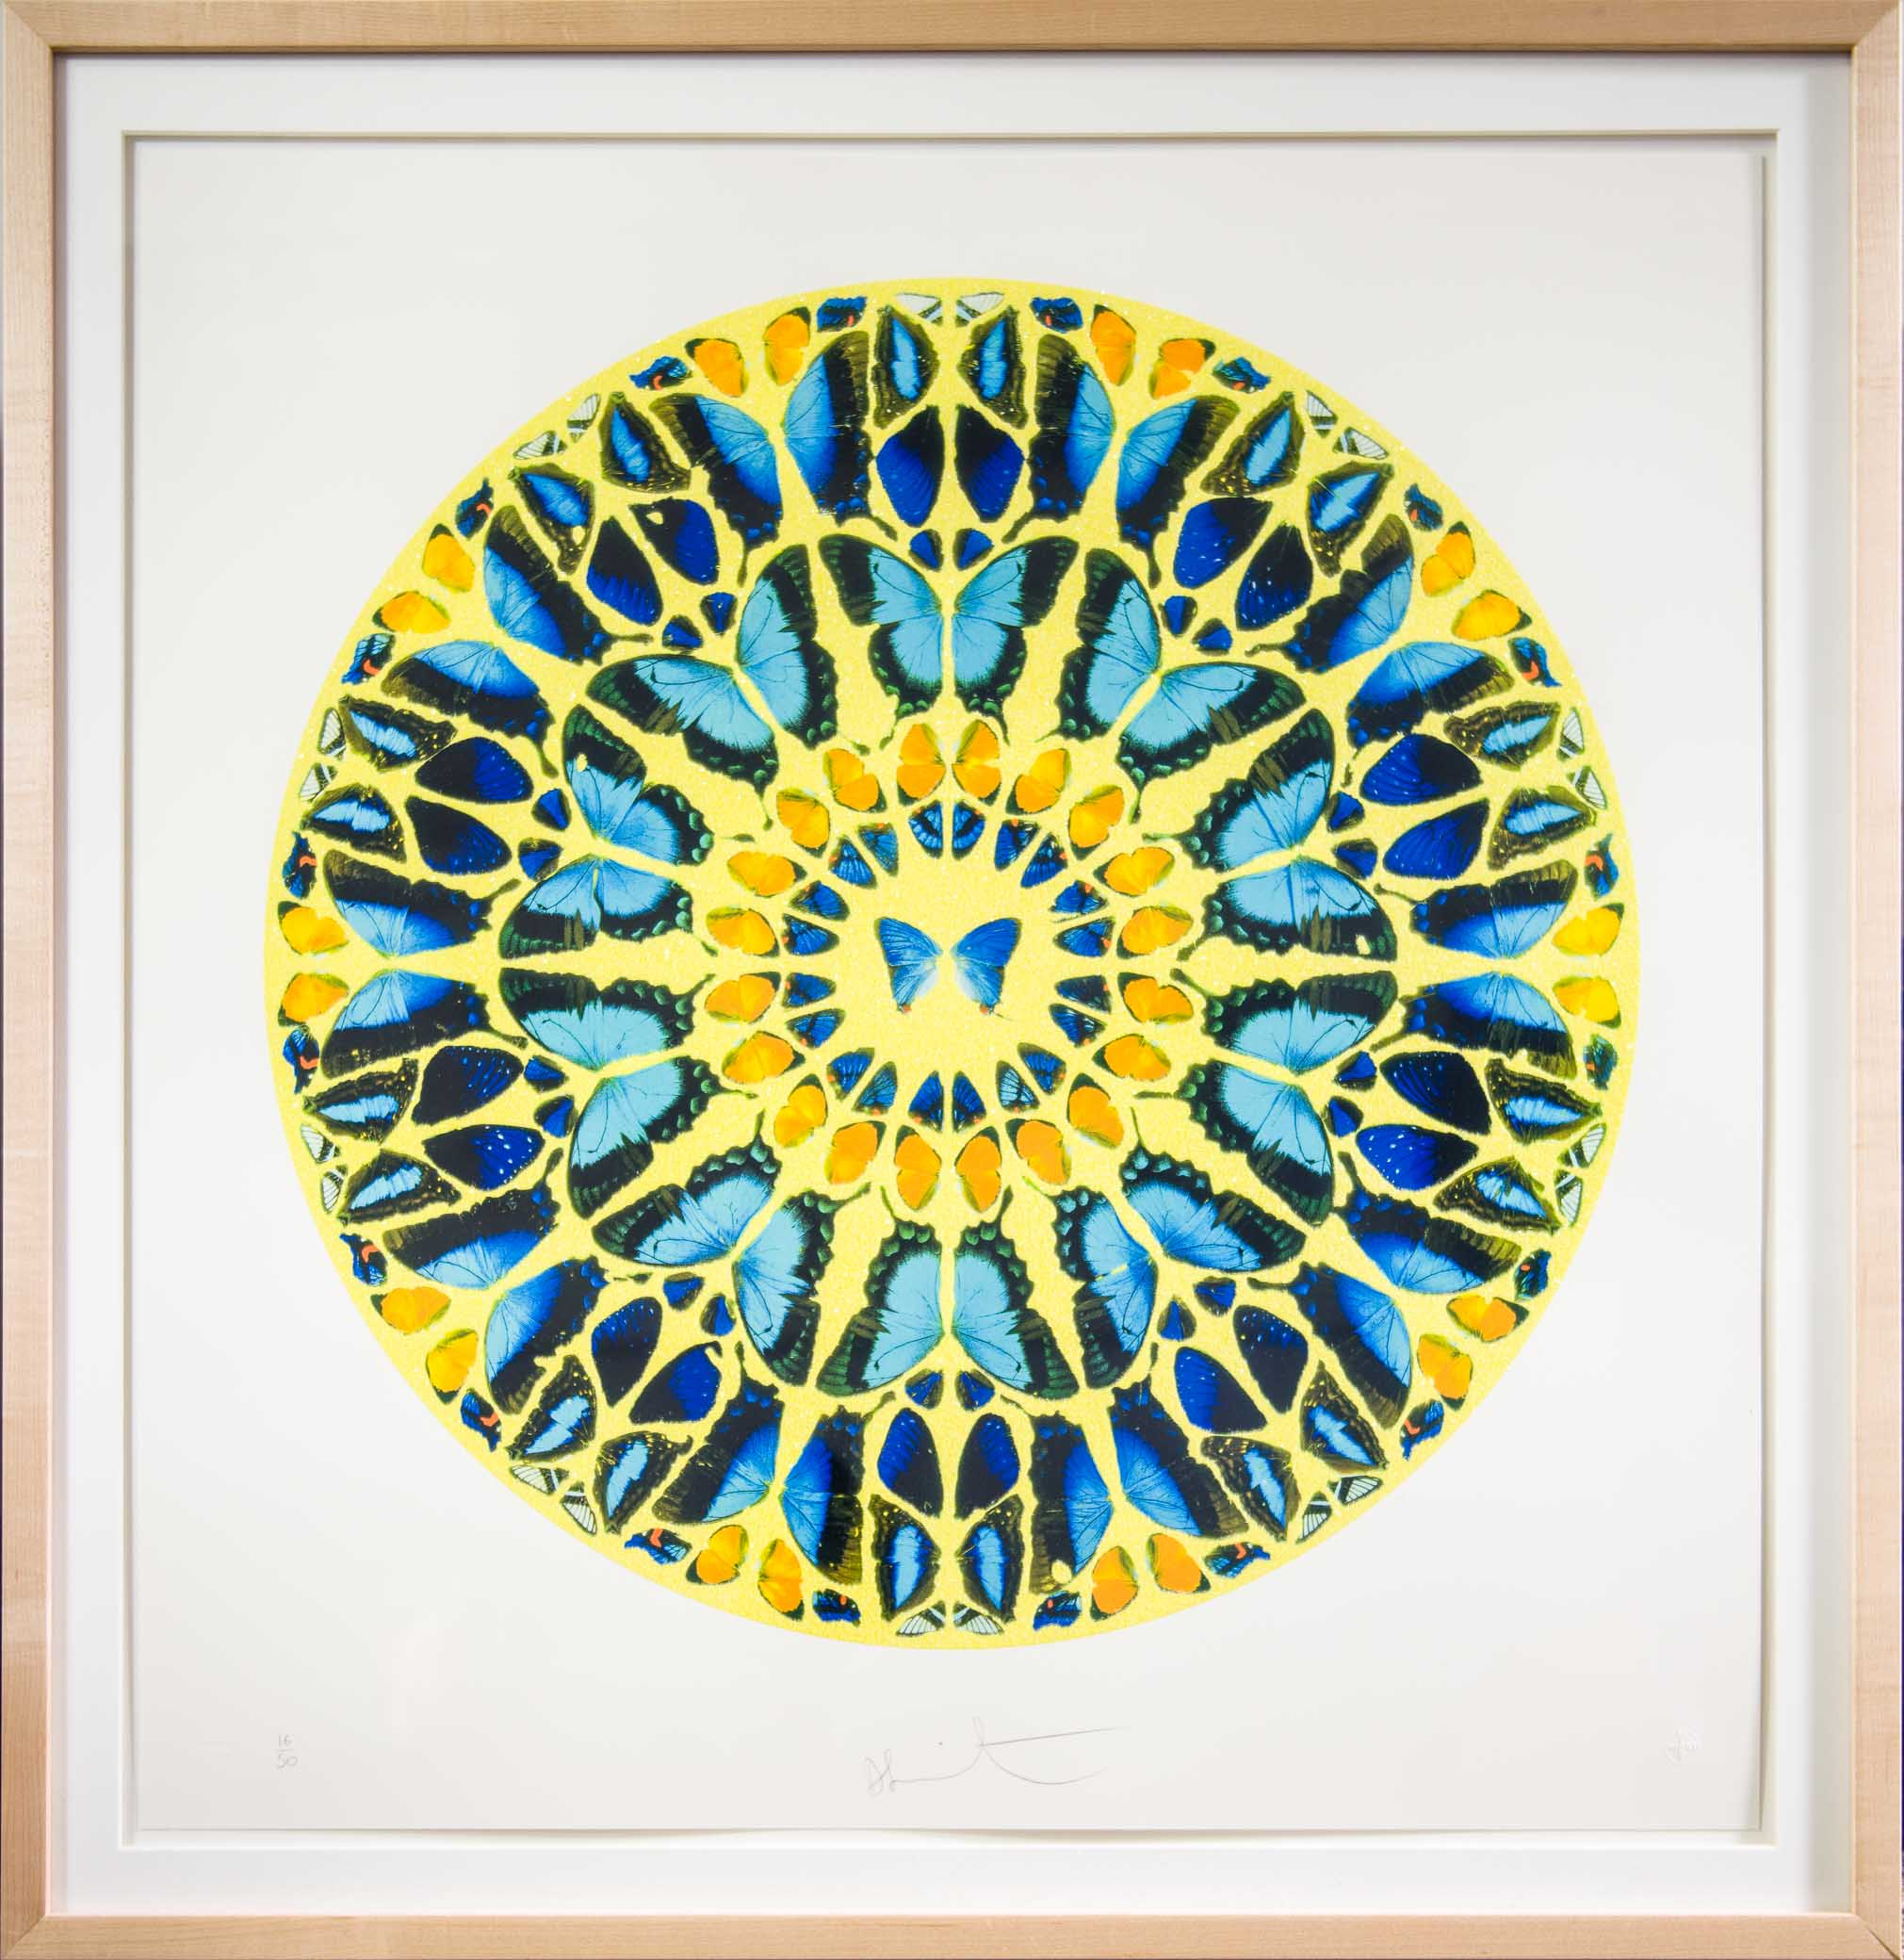 Damien Hirst, Psalm Print, Domine, in Virtue tua, 2010, Screenprint with diamond dust, Purchased through the Art Resource Trust, Polk Museum of Art Permanent Collection 2013.6.1